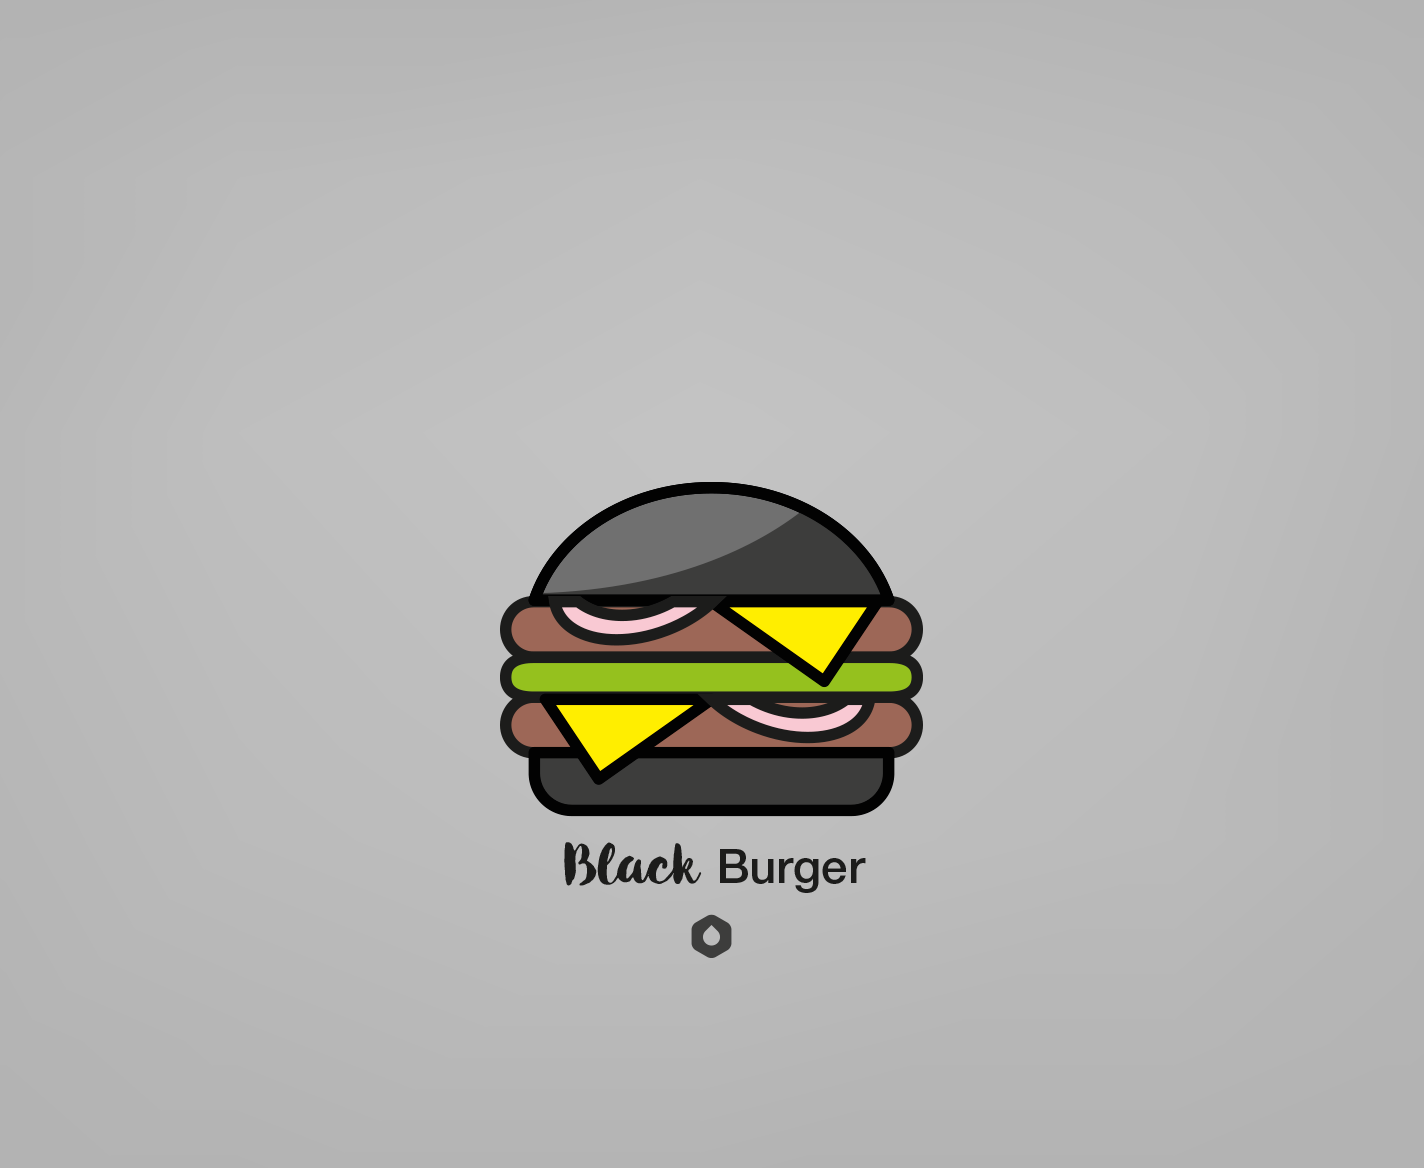 Wallpaper Pick Your Burger - iPad - Black